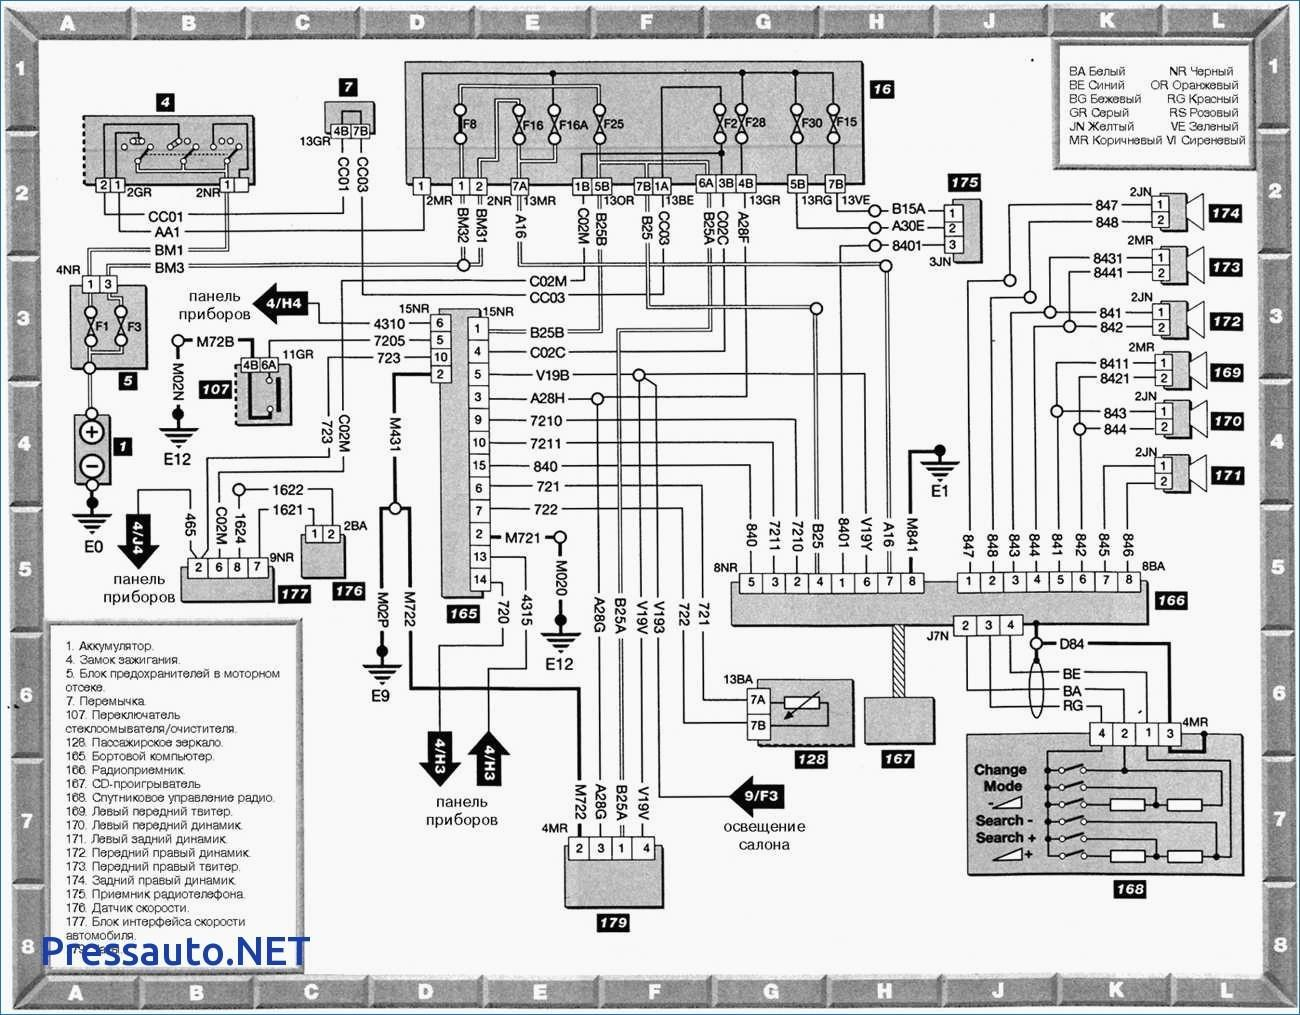 peugeot 308 towbar wiring diagram peugeot 407 wiring diagram full for android apk download  peugeot 407 wiring diagram full for